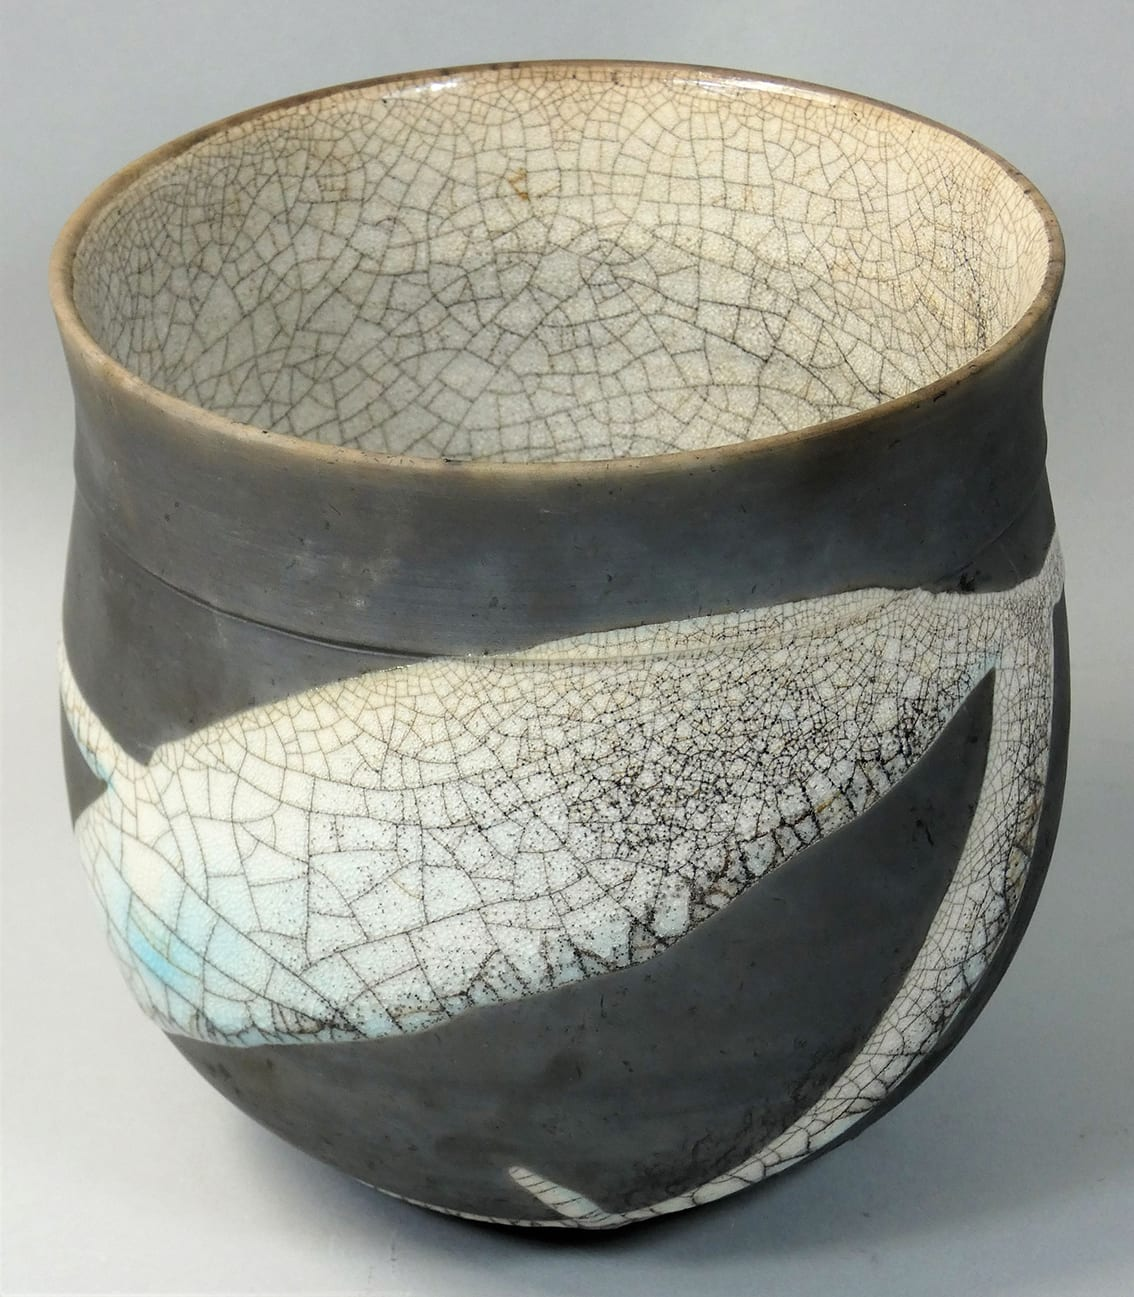 "<span class=""link fancybox-details-link""><a href=""/artists/98-tim-andrews/works/7142-tim-andrews-bowl/"">View Detail Page</a></span><div class=""artist""><strong>Tim Andrews</strong></div> b. 1960 <div class=""title""><em>Bowl</em></div> <div class=""signed_and_dated"">impressed monogram 'TA'</div> <div class=""medium"">Raku with 'crackle glaze' interior</div> <div class=""dimensions"">h. 16 cm<br /> h. 6 1/4 in.</div><div class=""price"">£220.00</div><div class=""copyright_line"">Own Art: £22 x 10 months 0% APR</div>"